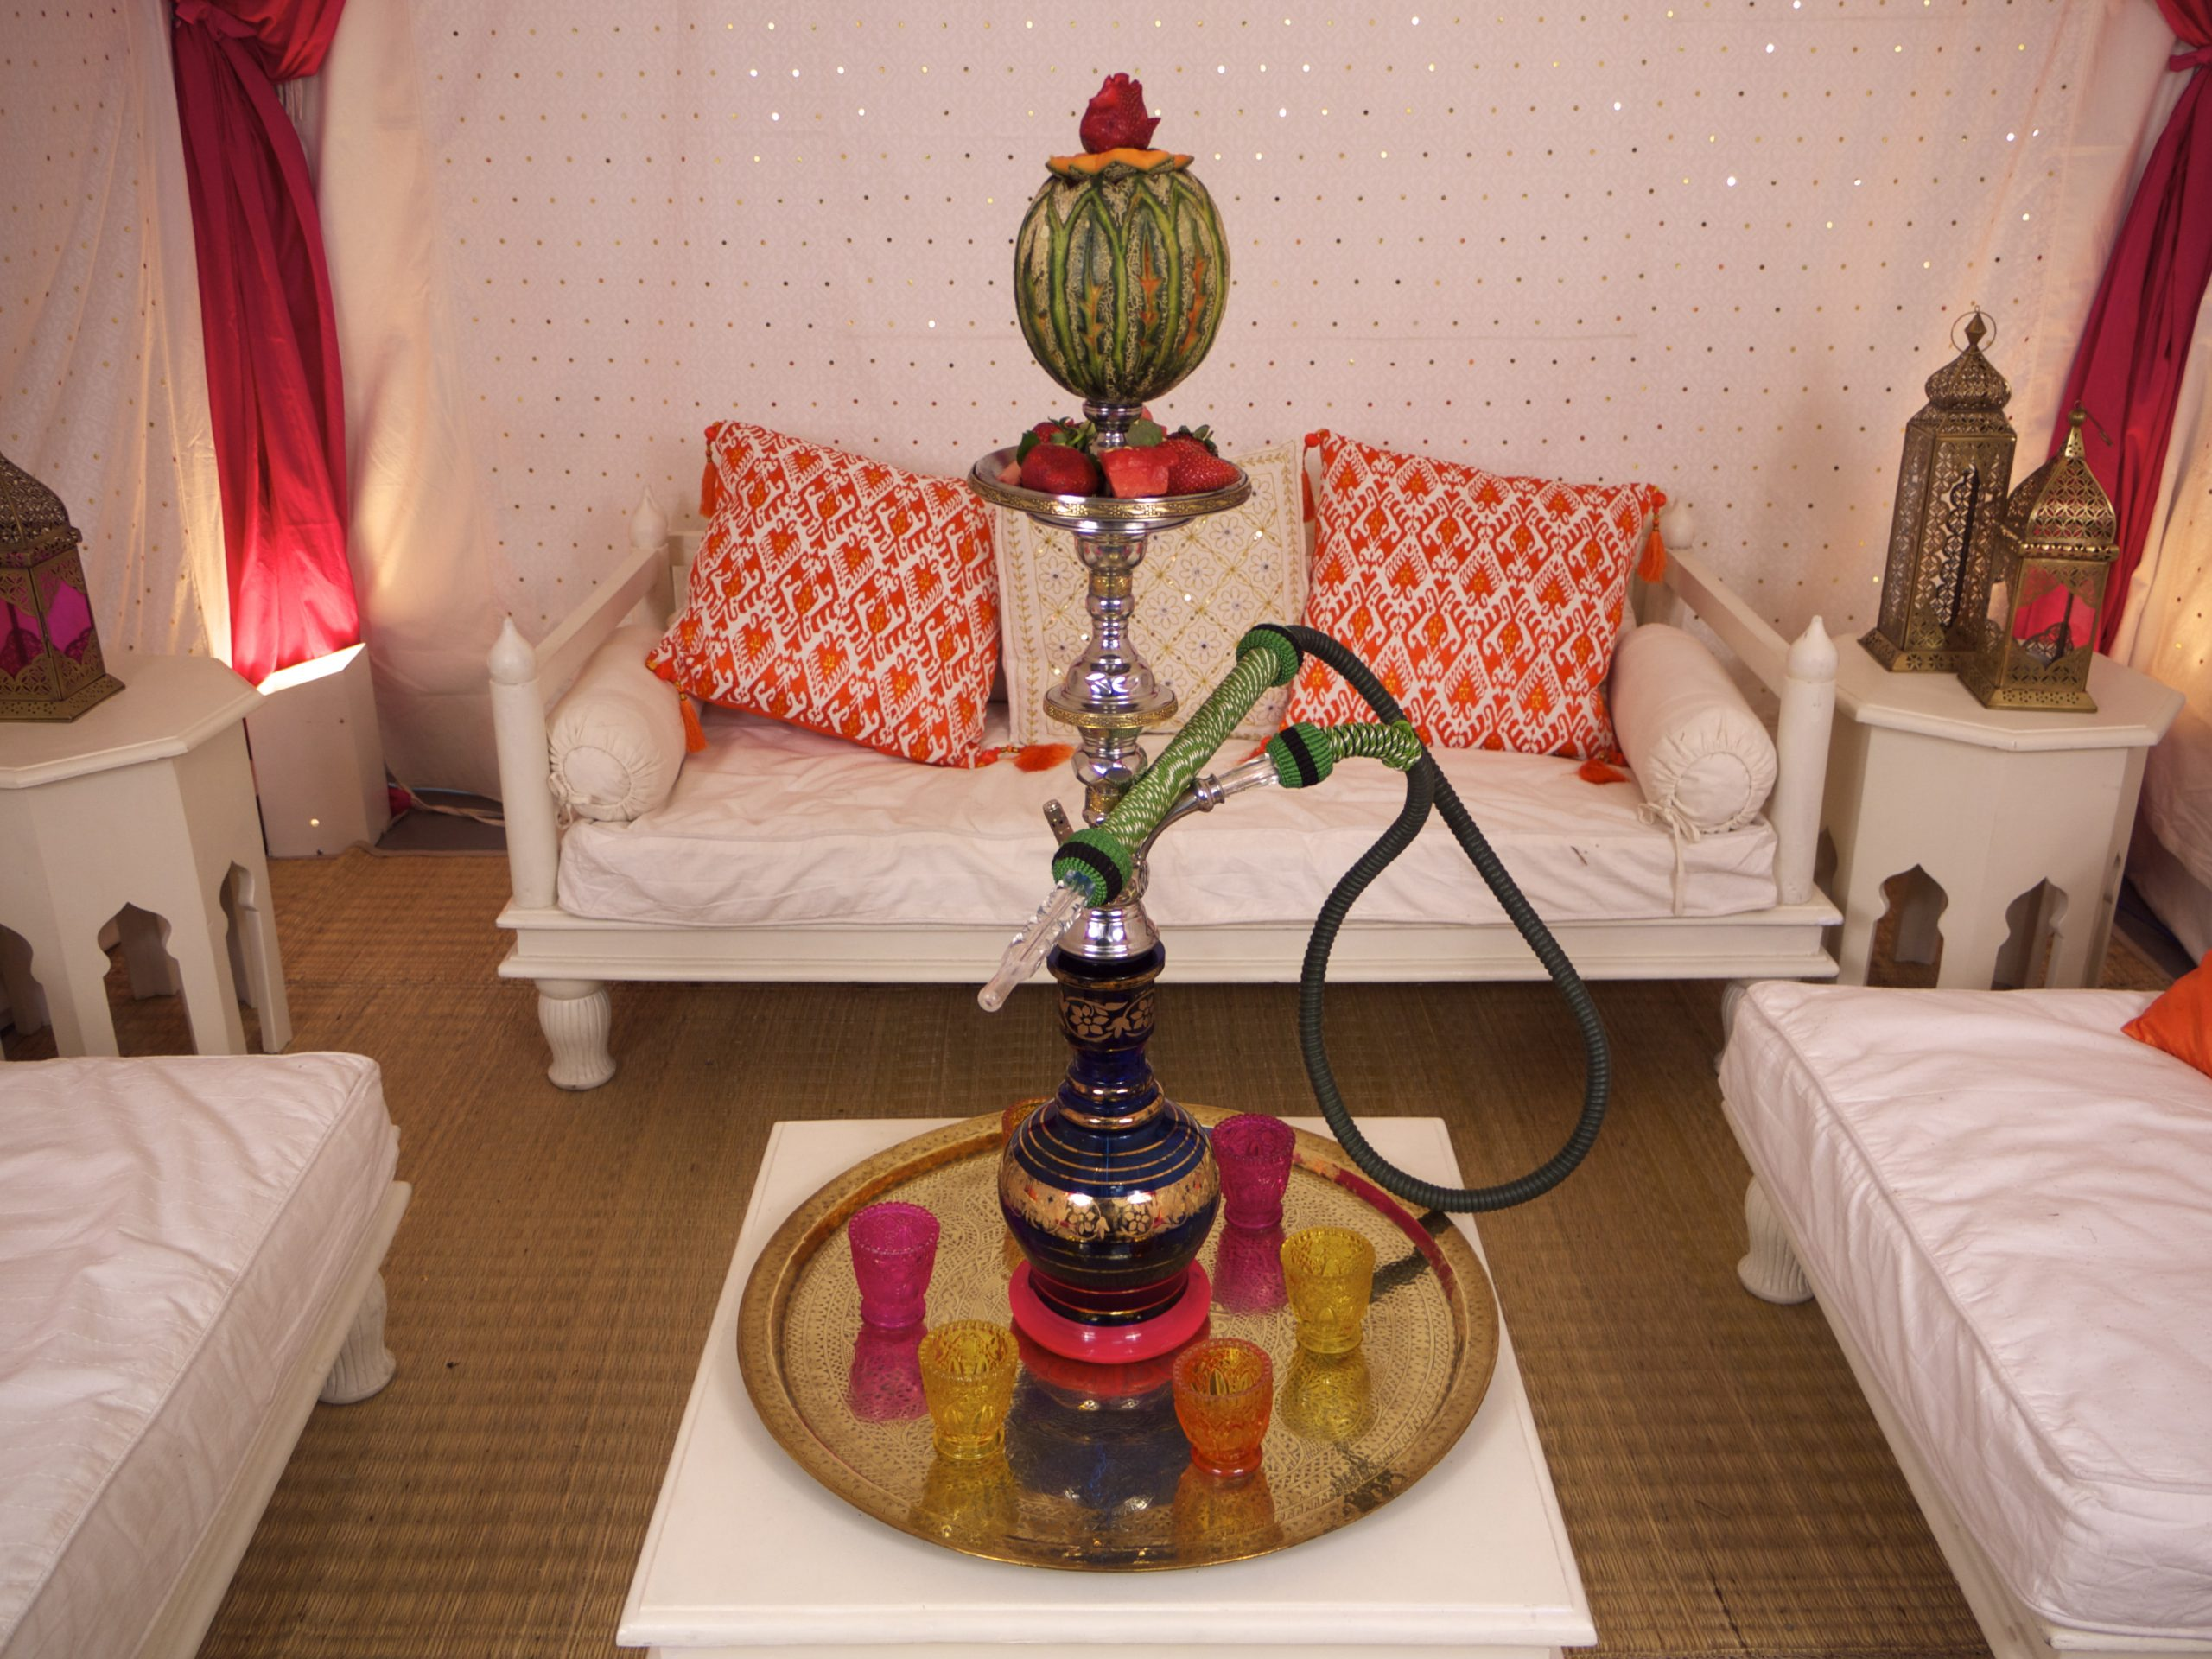 Shisha Pipe Hire UK for Birthdays, Weddings, Celebrity Parties and Corporate Events